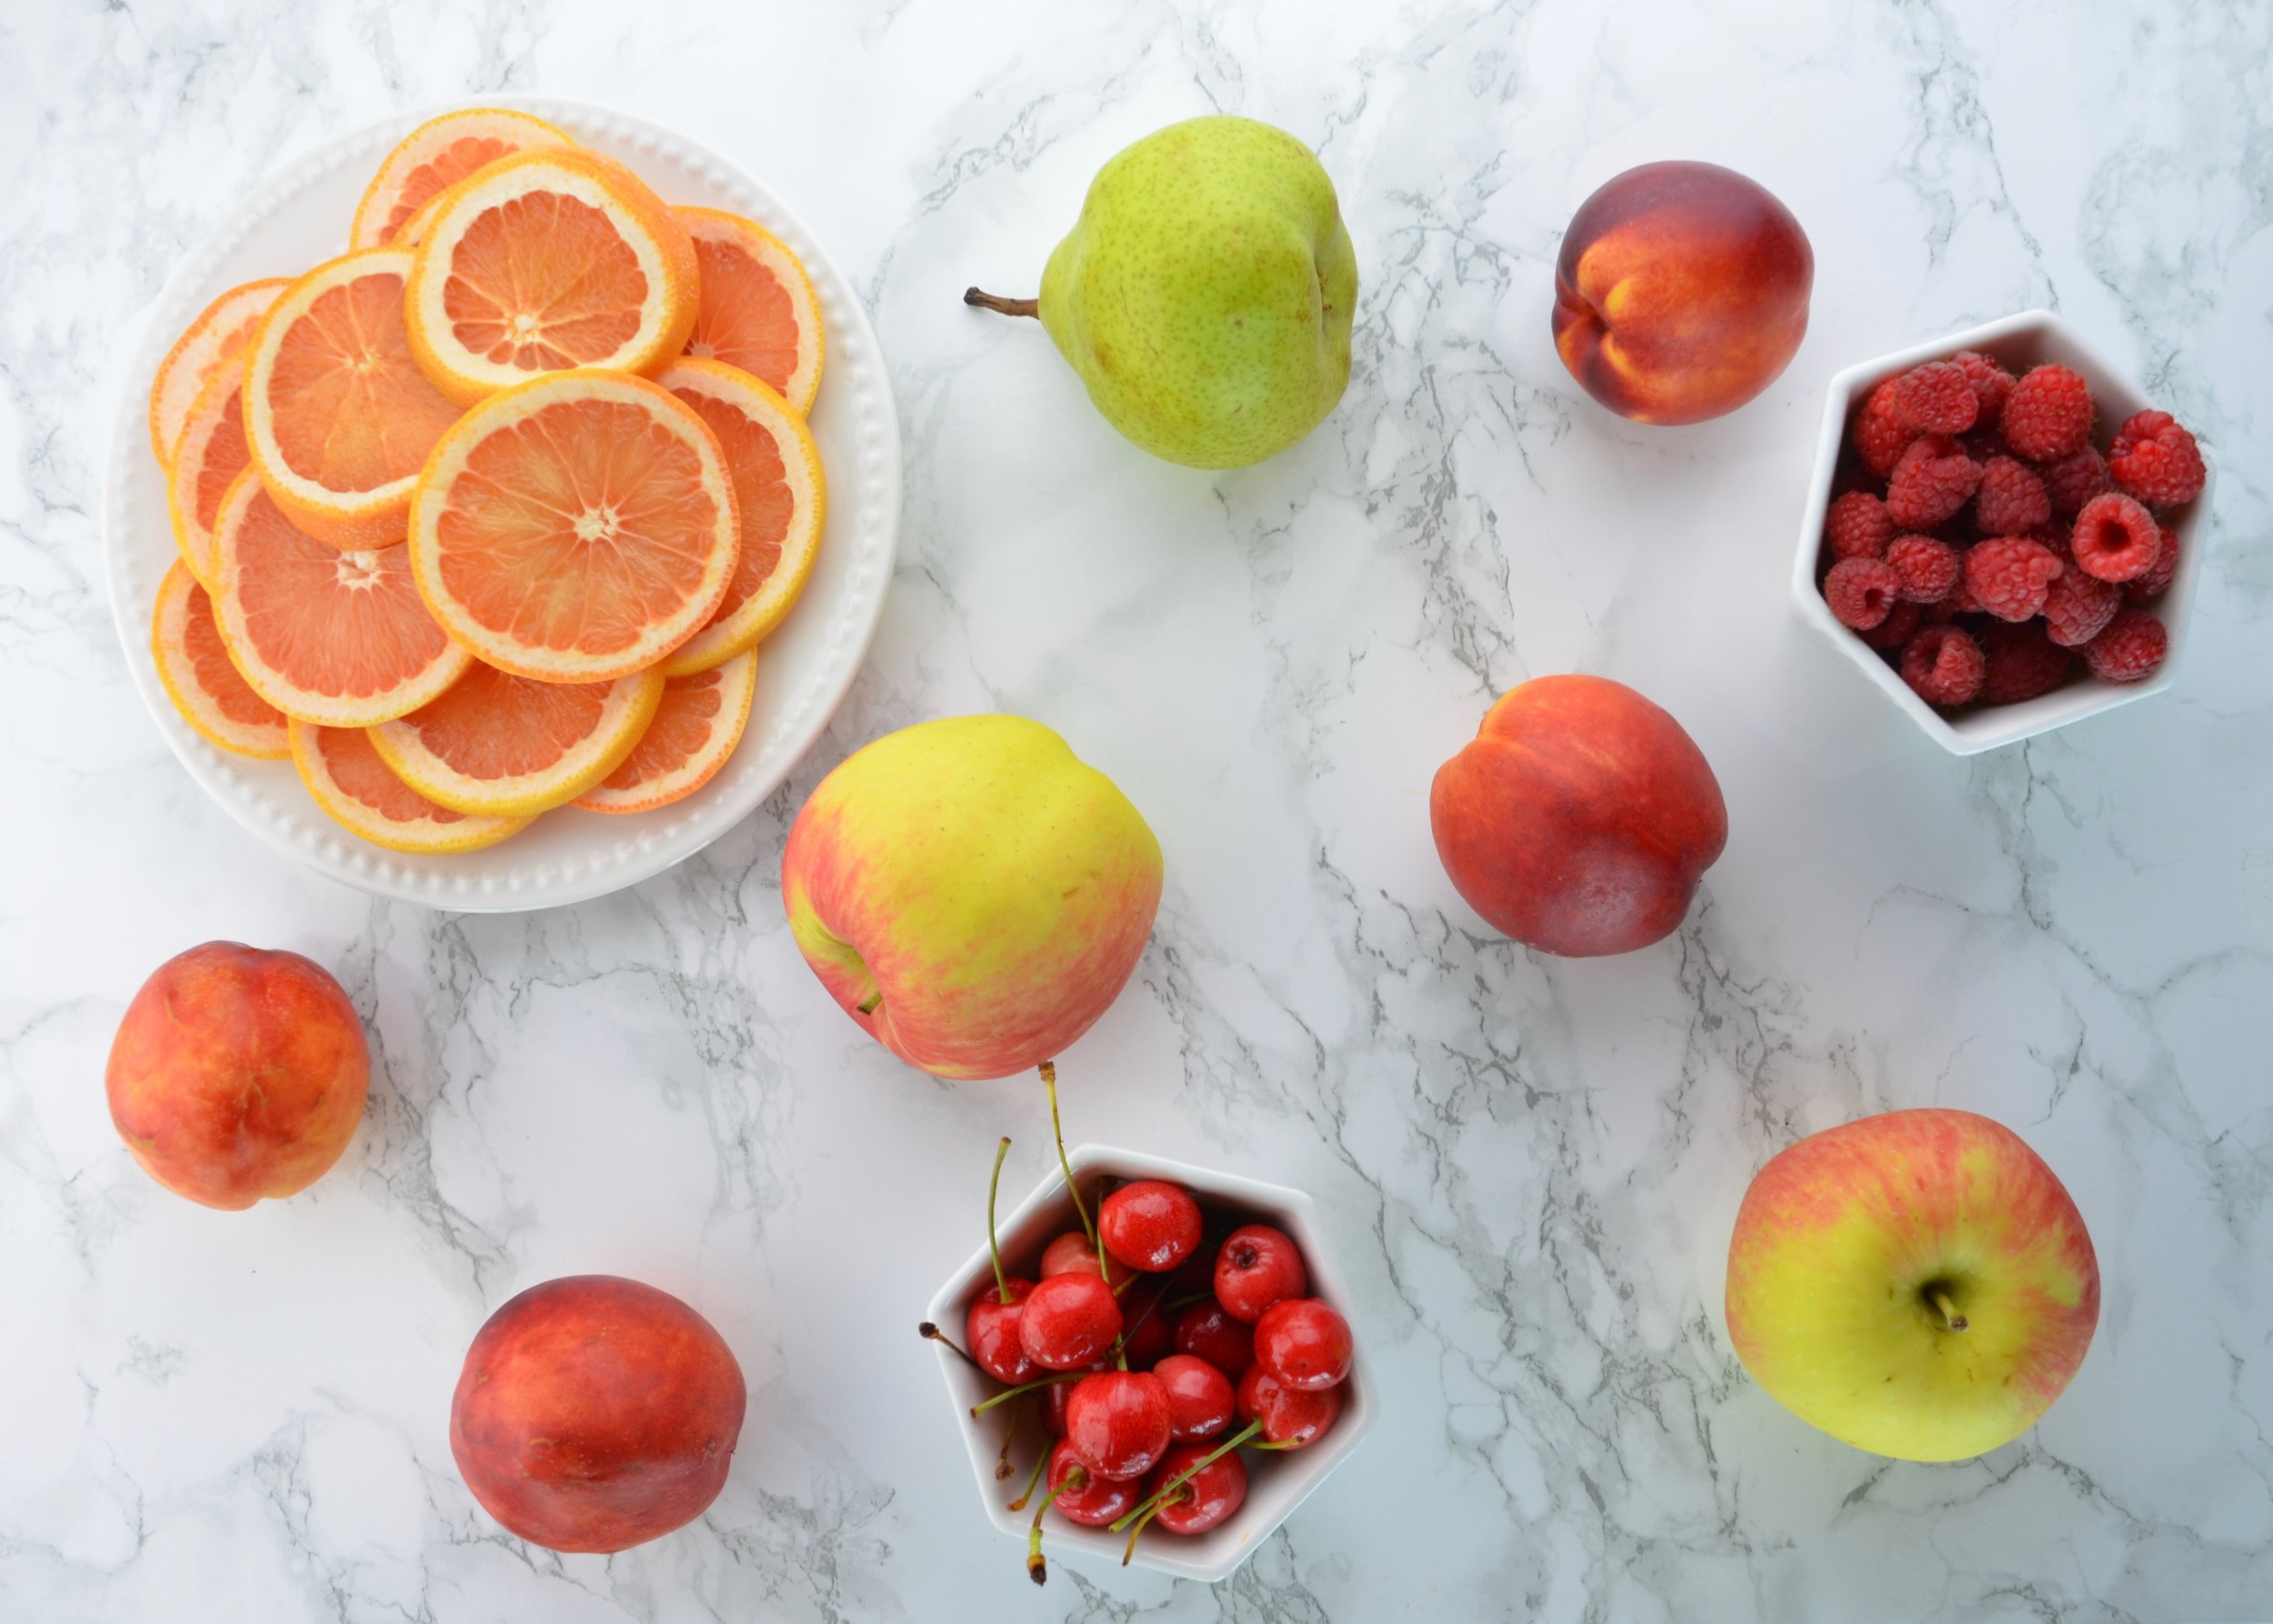 Safely Sweet NutritionVictoria, Saanich, Saanichton, Sidney, Esquimalt, James Bay, Oak Bay, BCNutrition, Nutrition Consultations, Weight Loss, Meal Plans, Healthy Eating, Recipe Development, 21 Day Health Challenges, Sports Nutrition